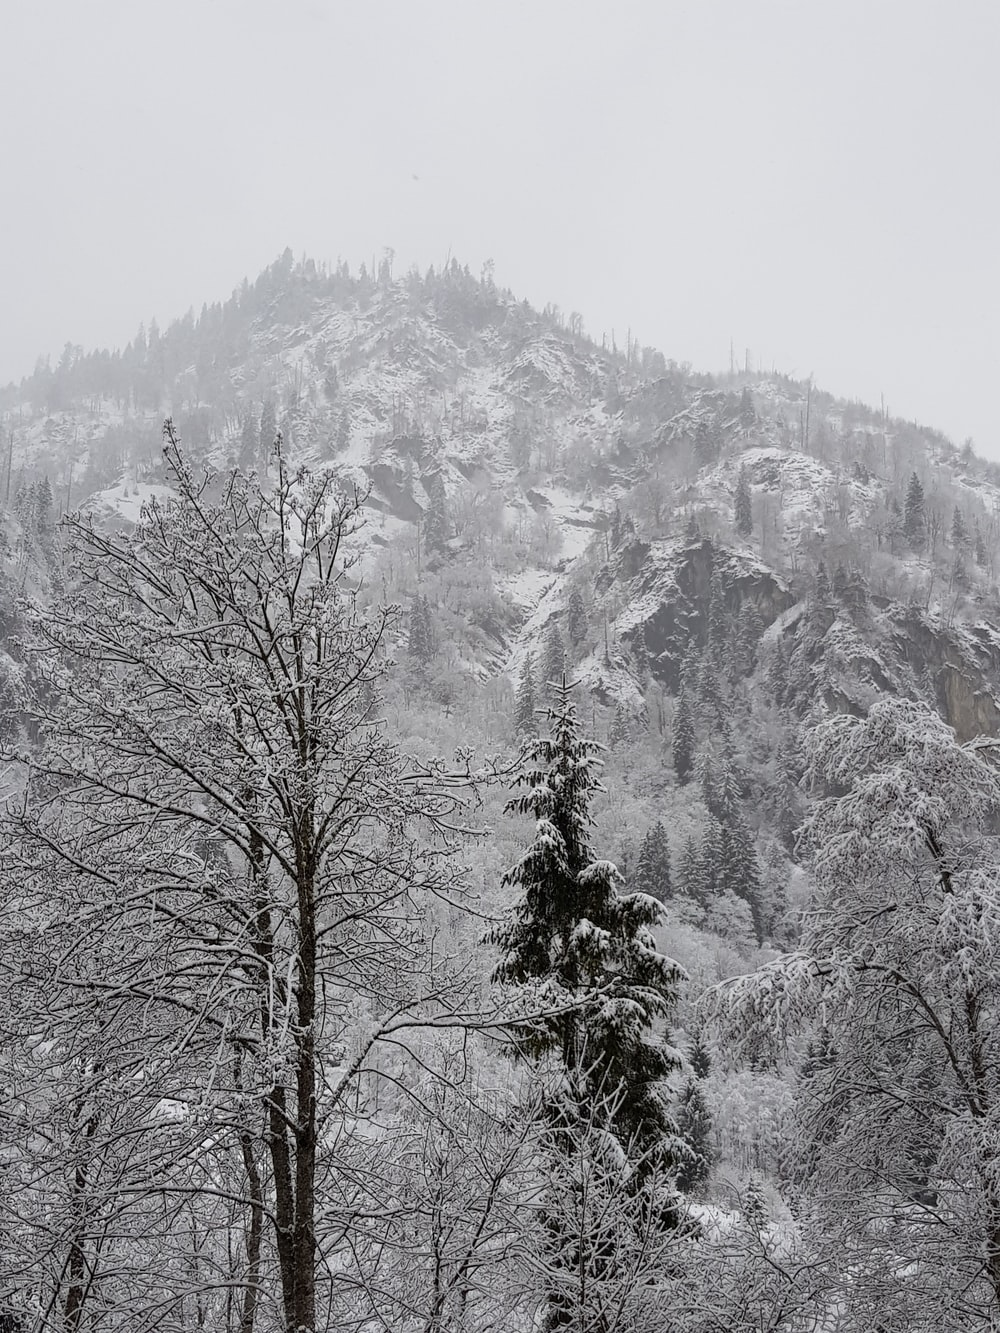 snow covered trees and mountain